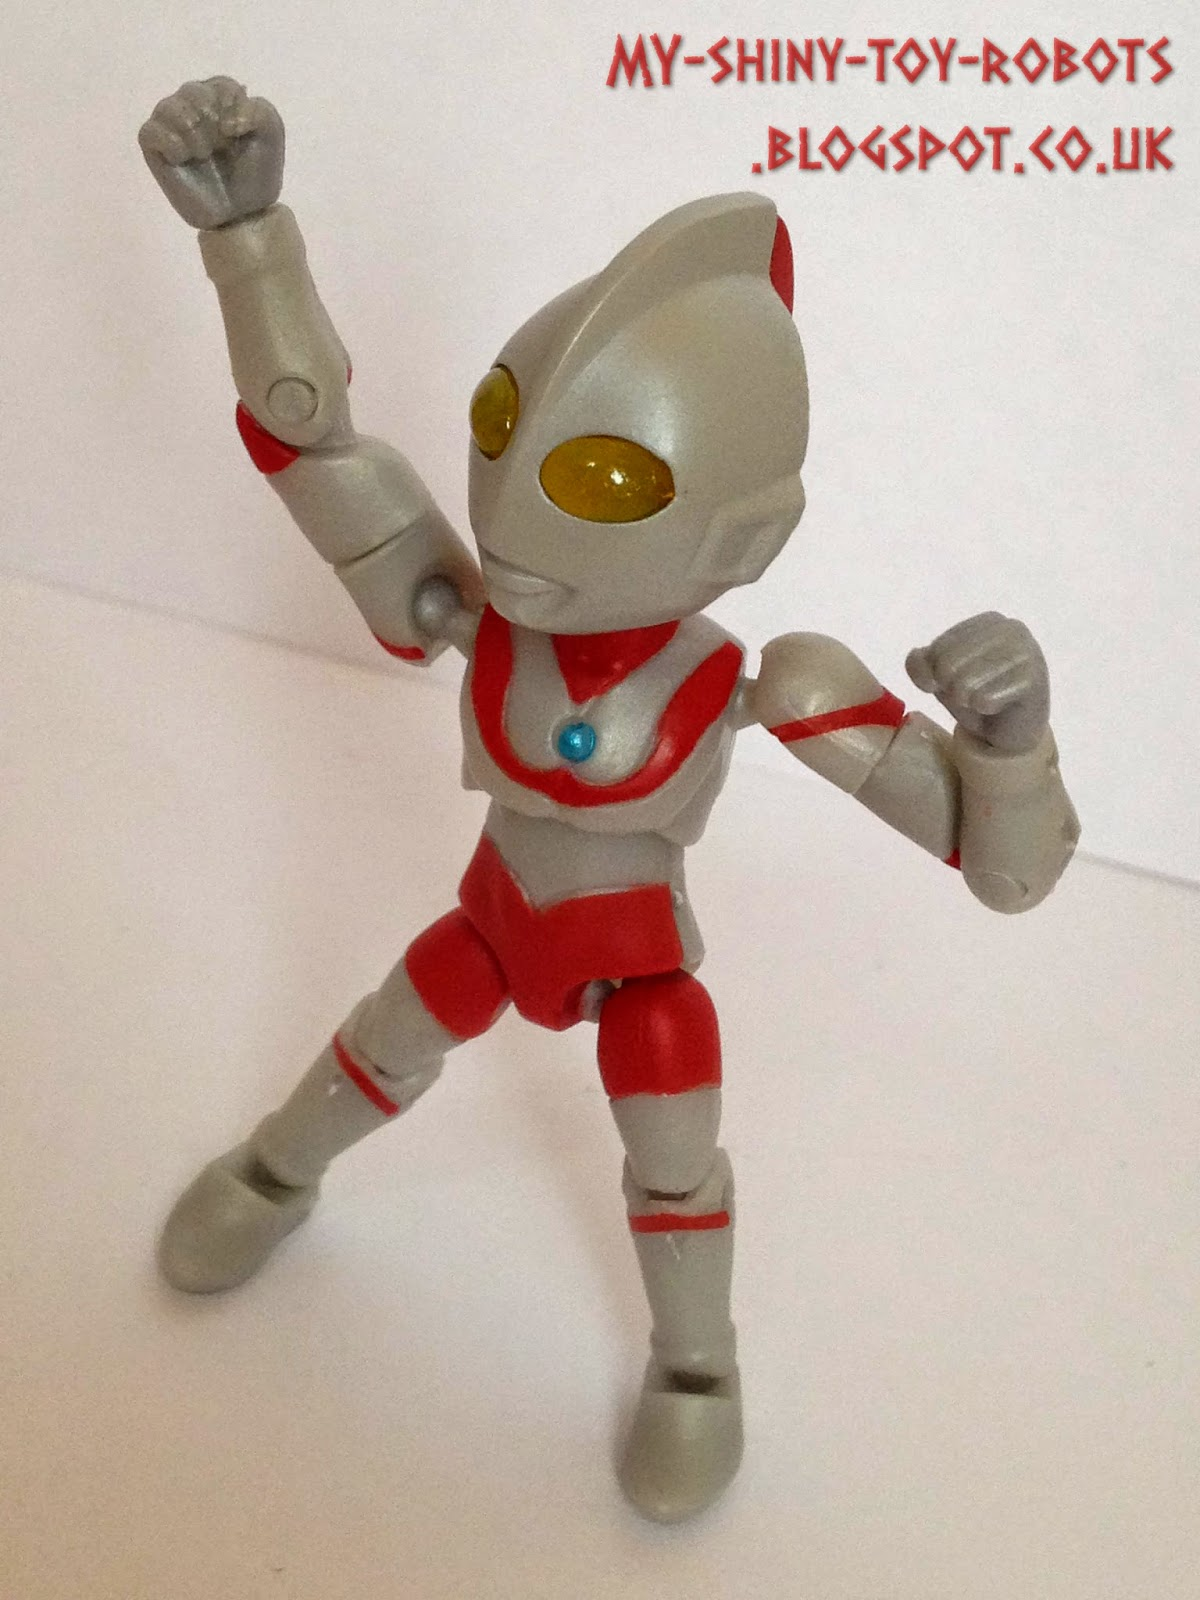 Ultraman takes a pose